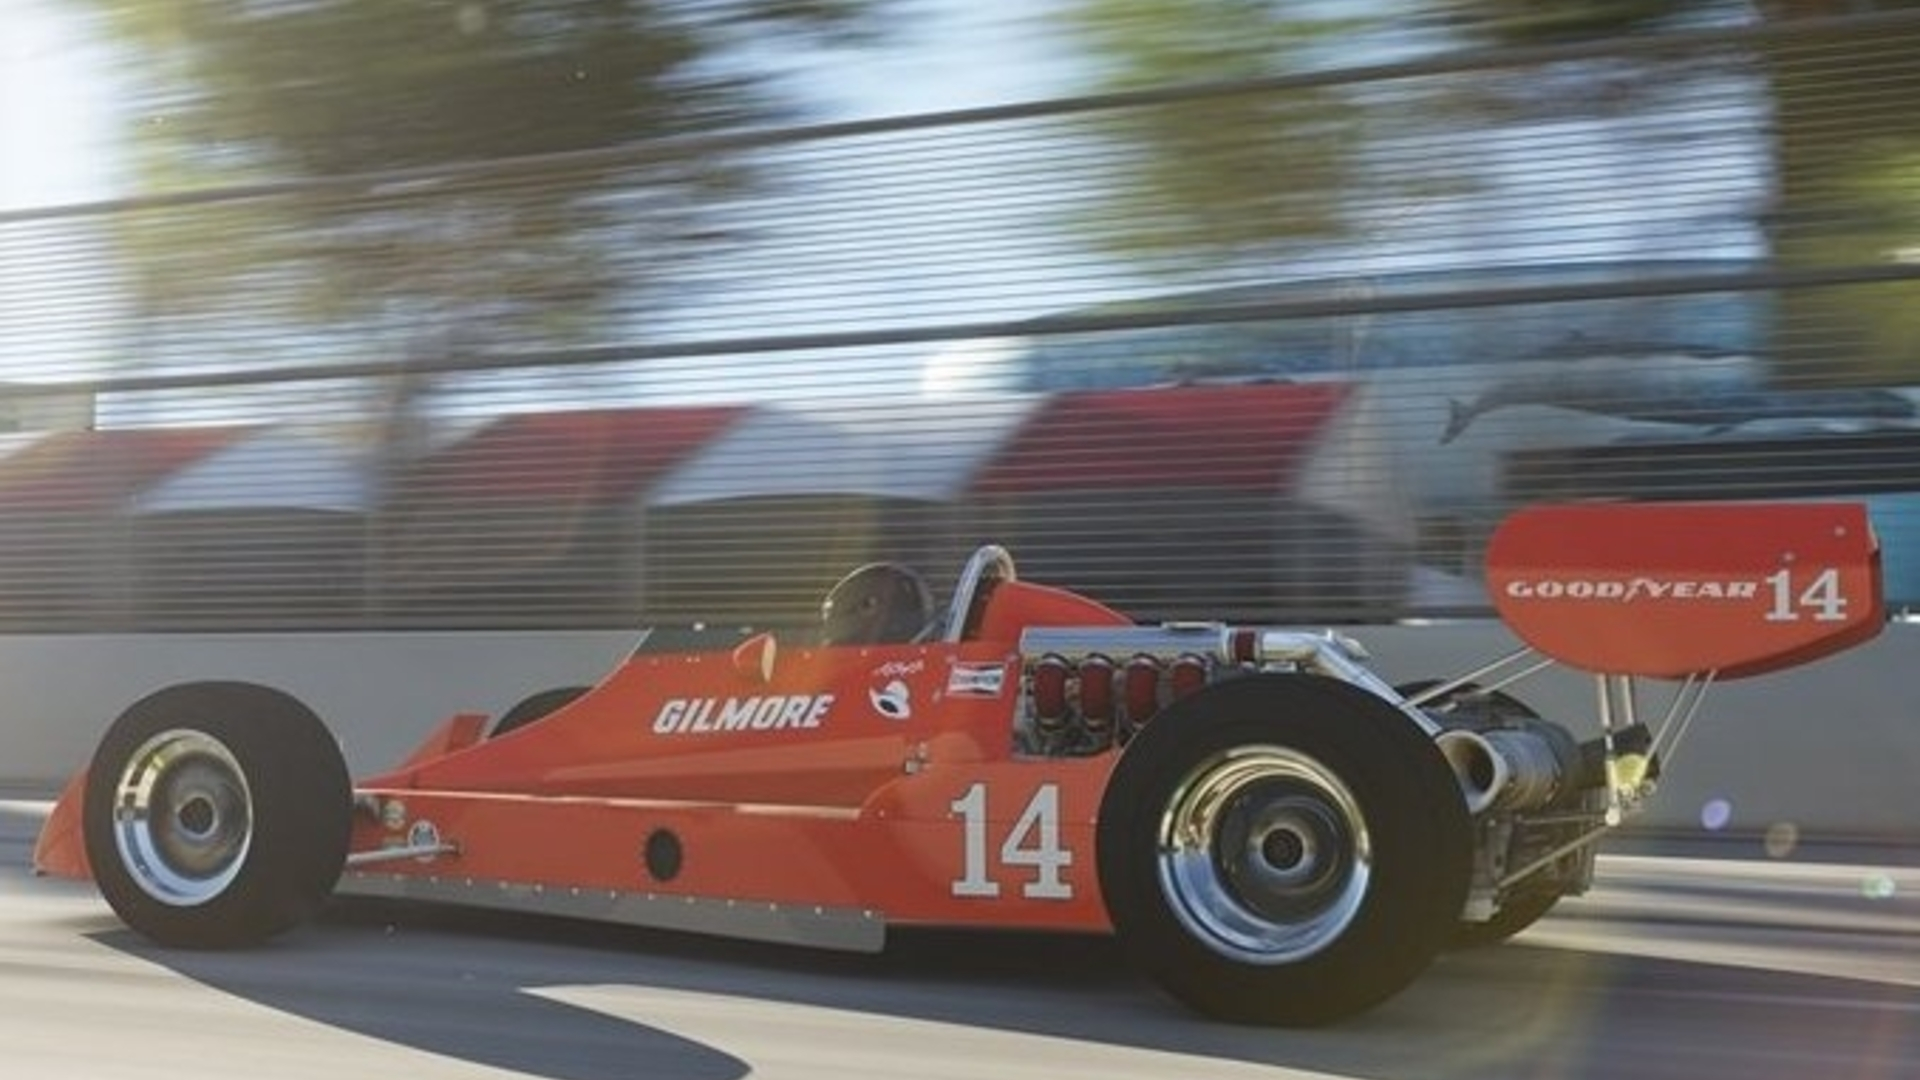 Forza 5 is getting two more DLC packs